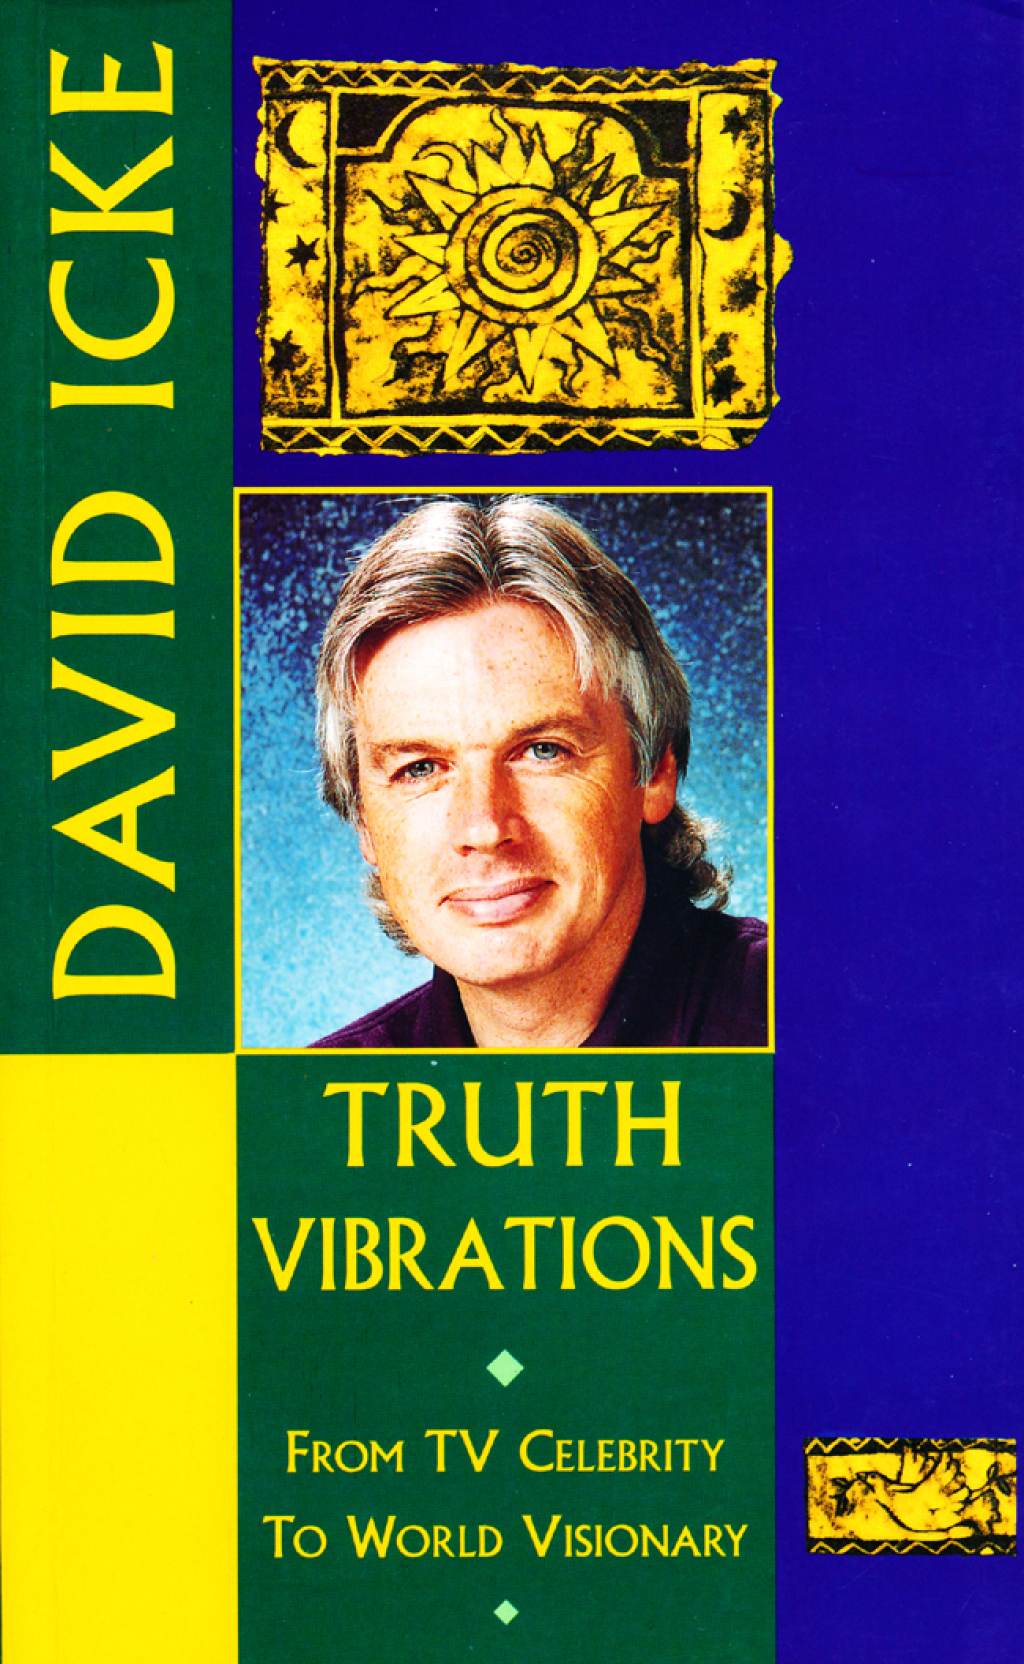 Truth Vibrations – David Icke's Journey from TV Celebrity to World Visionary (ebook) eBooks